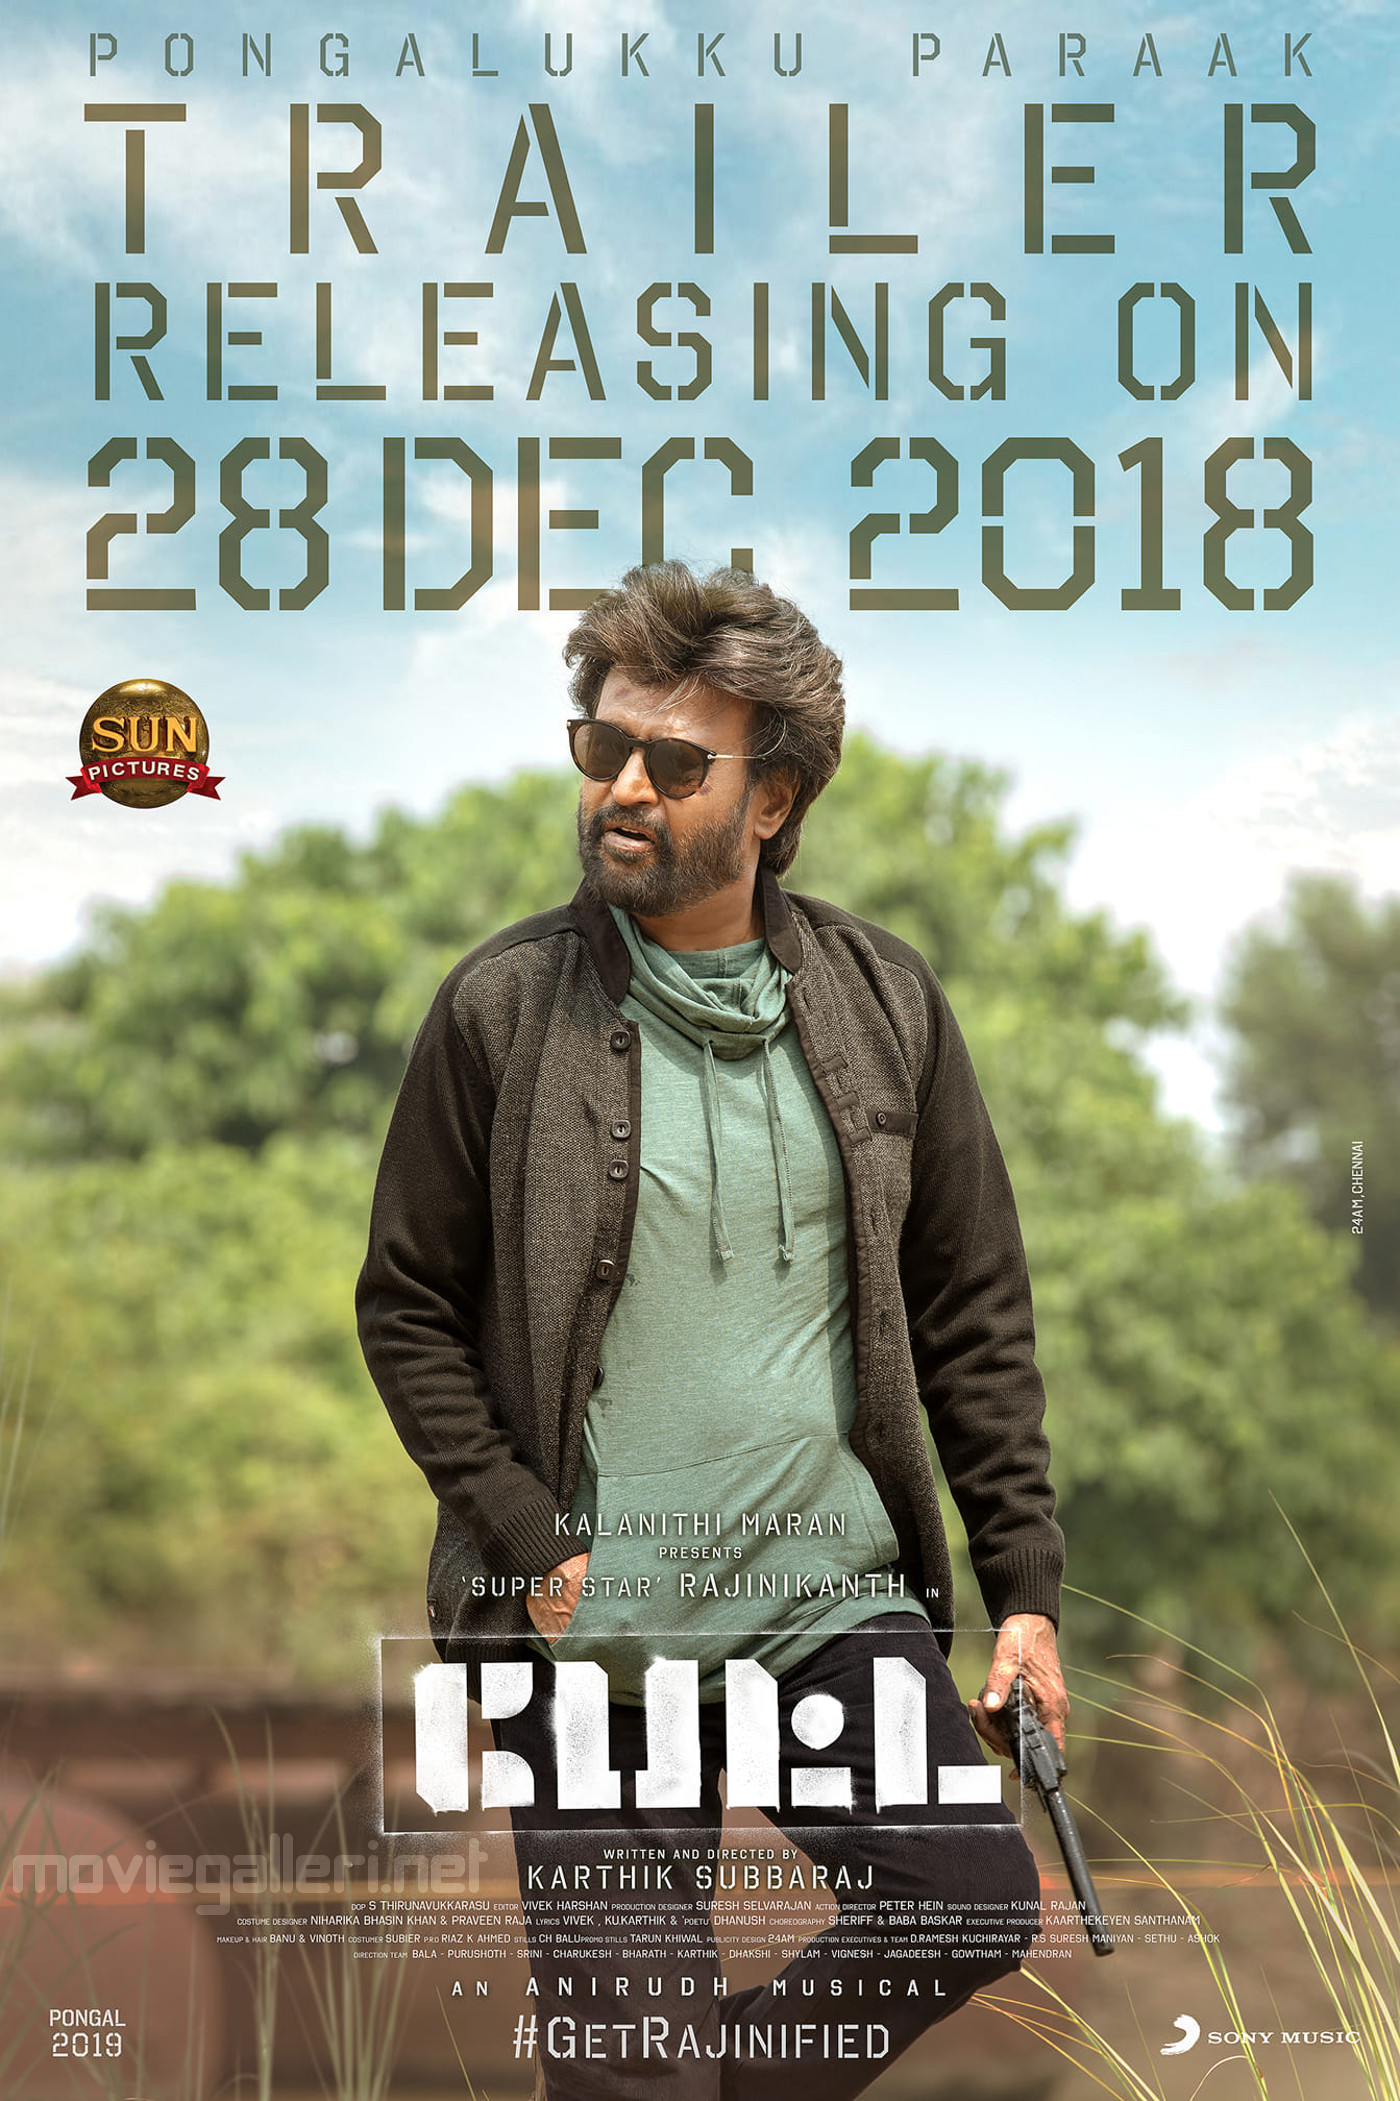 Rajinikanth Petta Movie Trailer Releasing on 28 Dec 2018 Poster HD